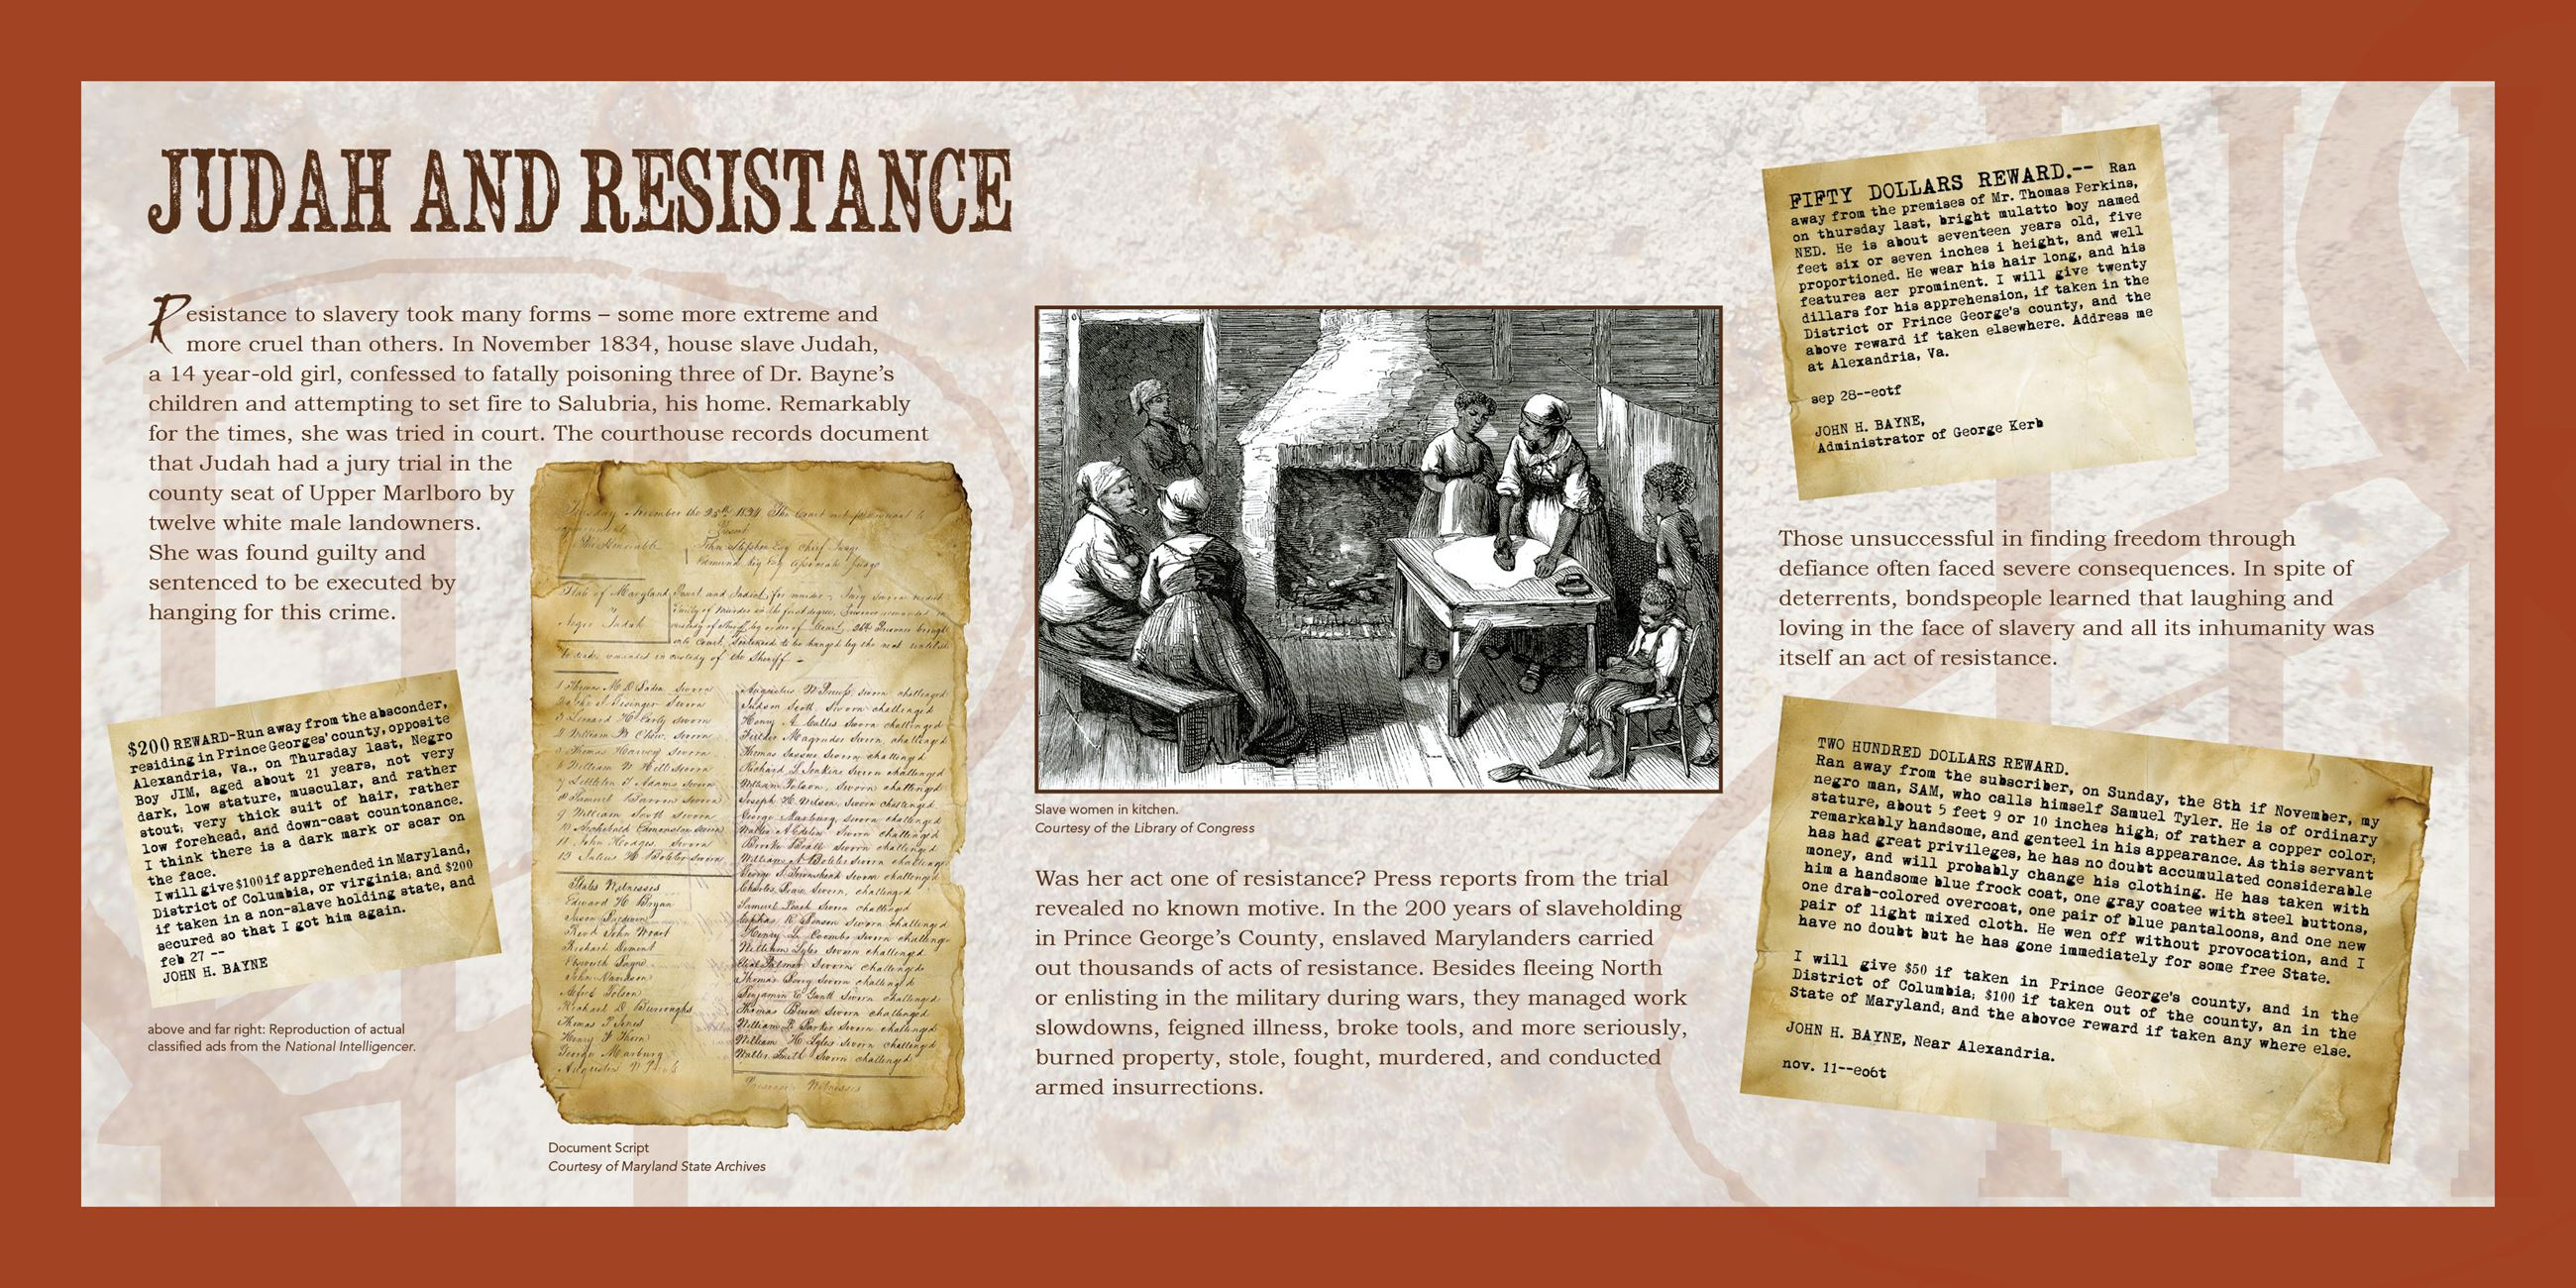 Judah and Resistance